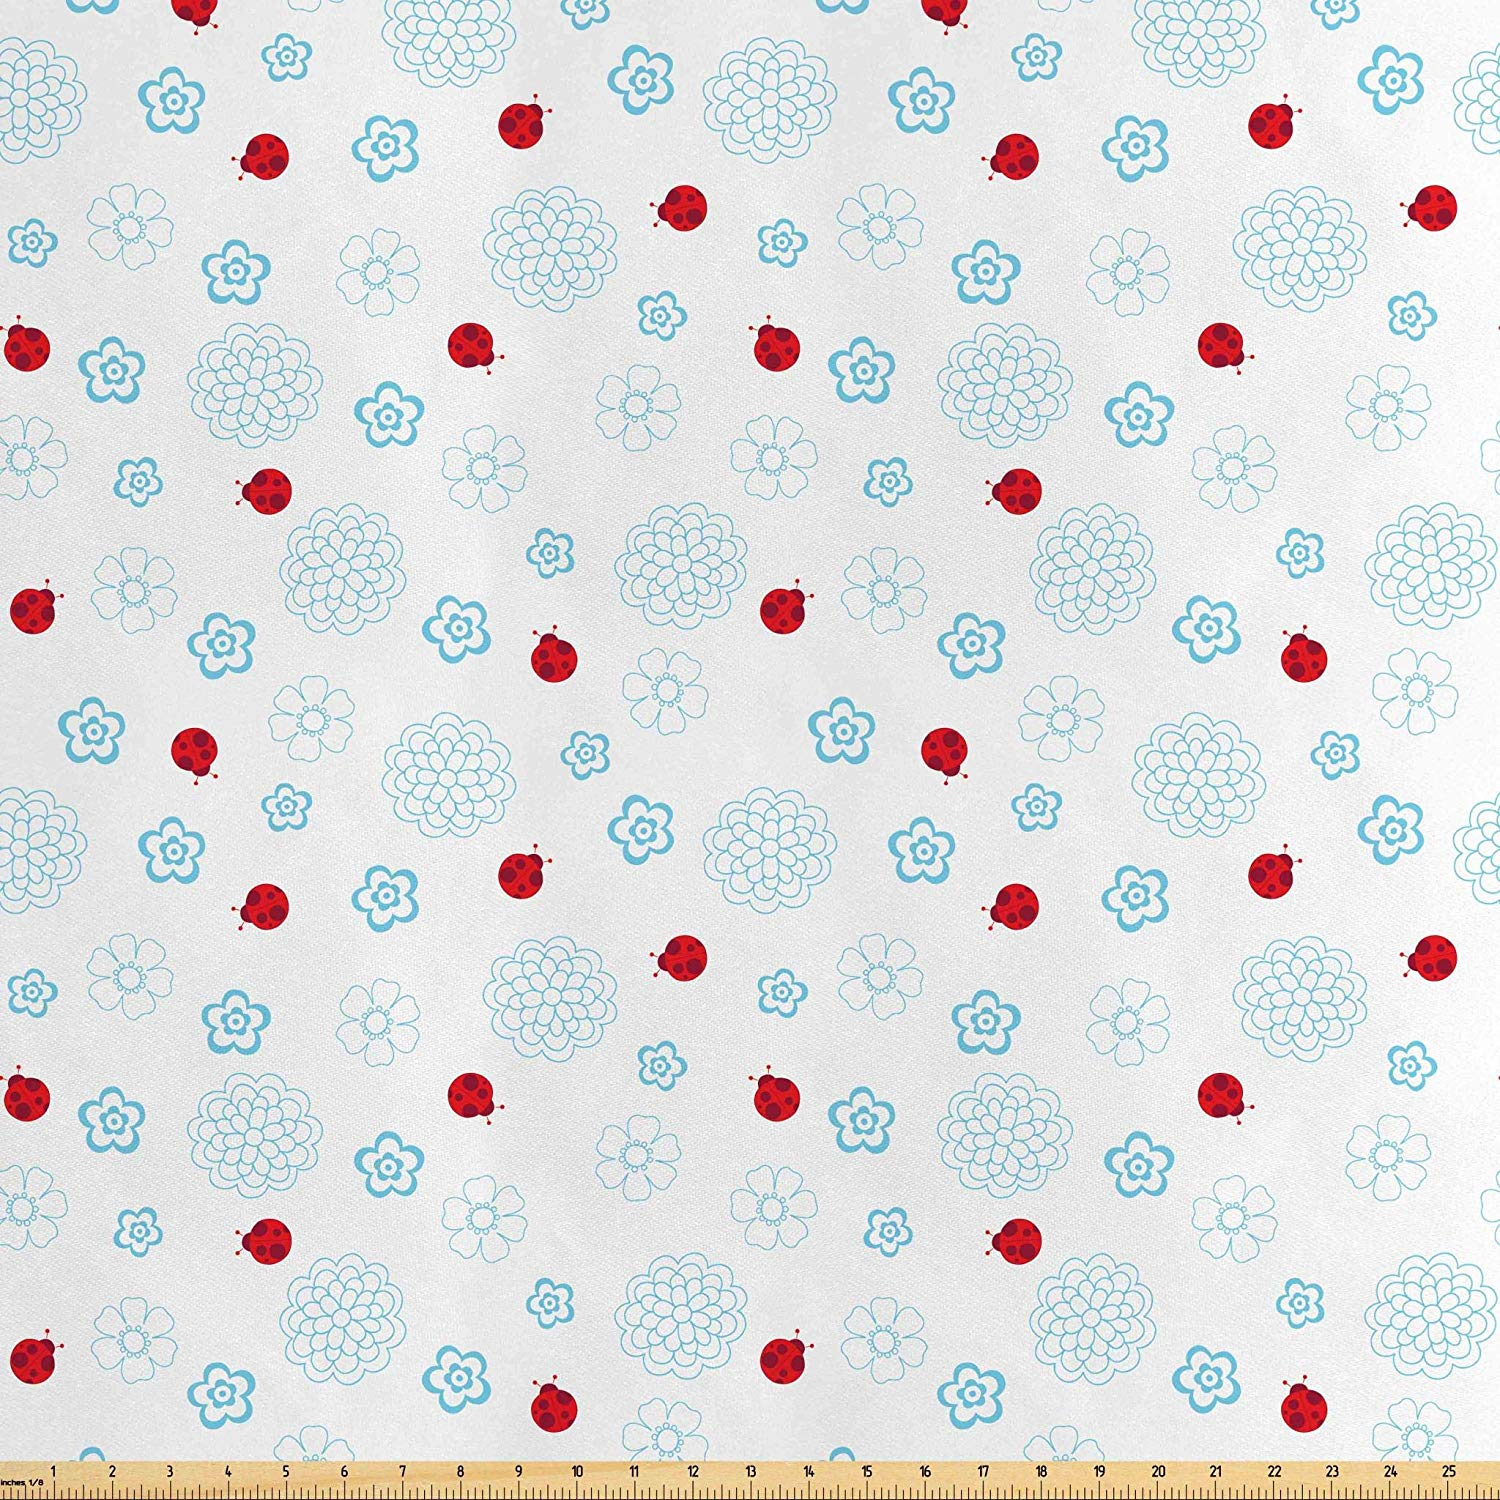 Amazon.com: Lunarable Ladybugs Fabric by The Yard, Ladybugs.